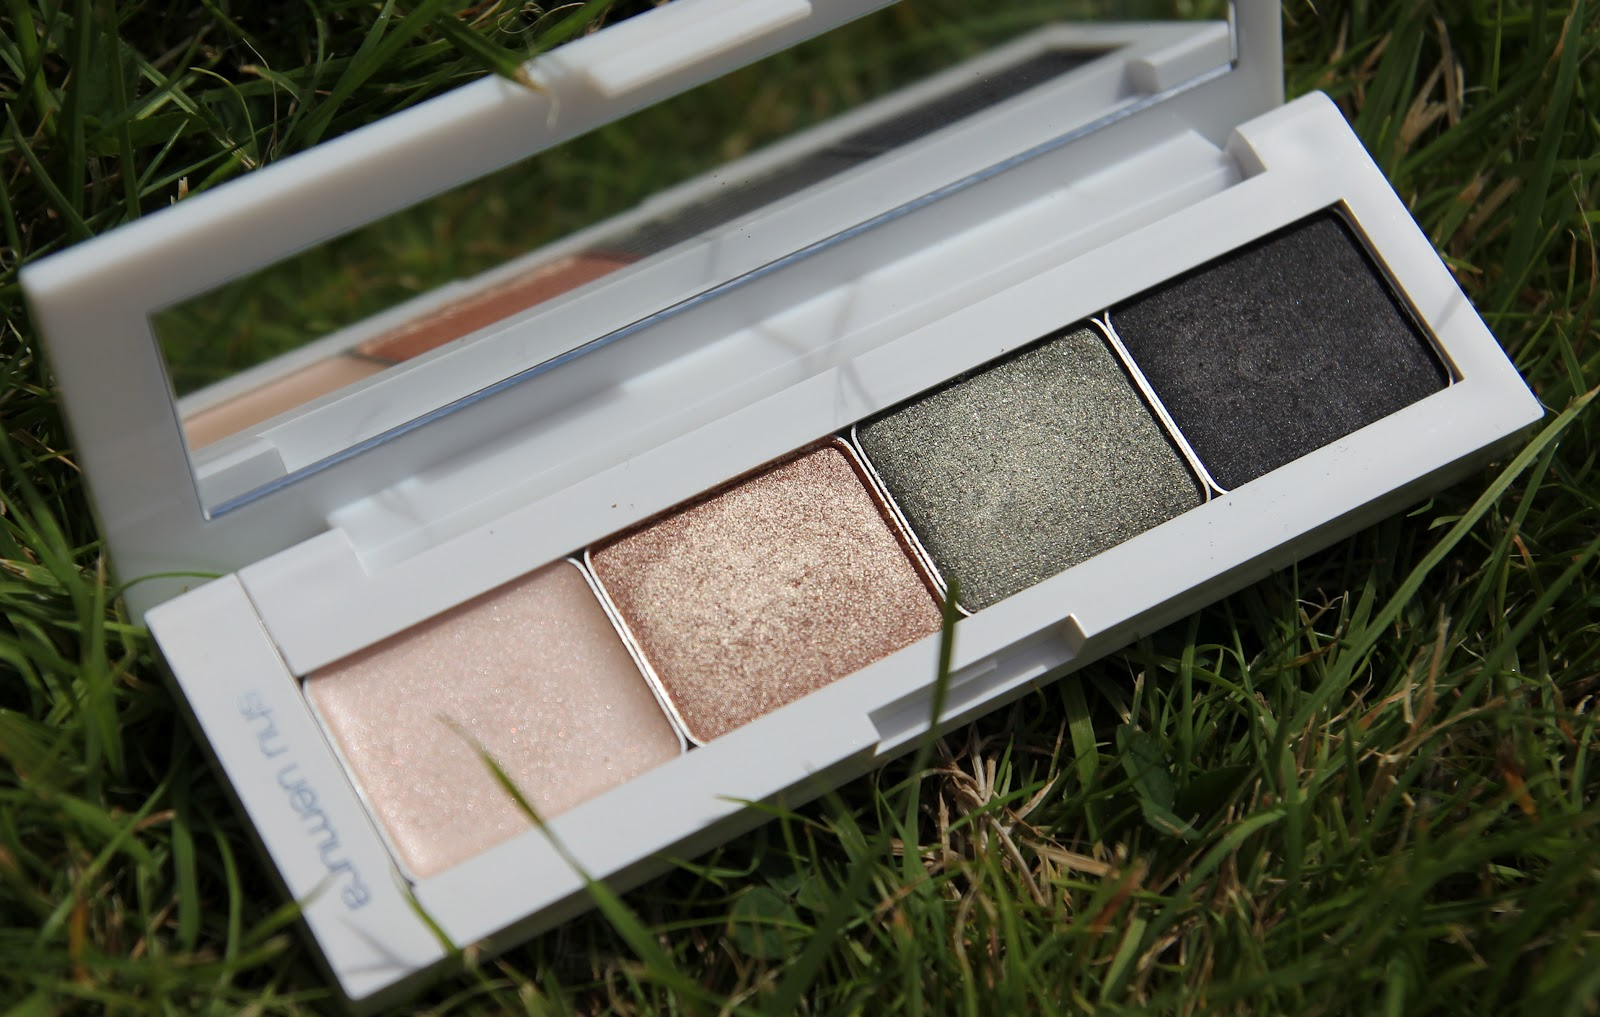 Customisation De Palette : The finished product looks like just that... a finished product, not ...